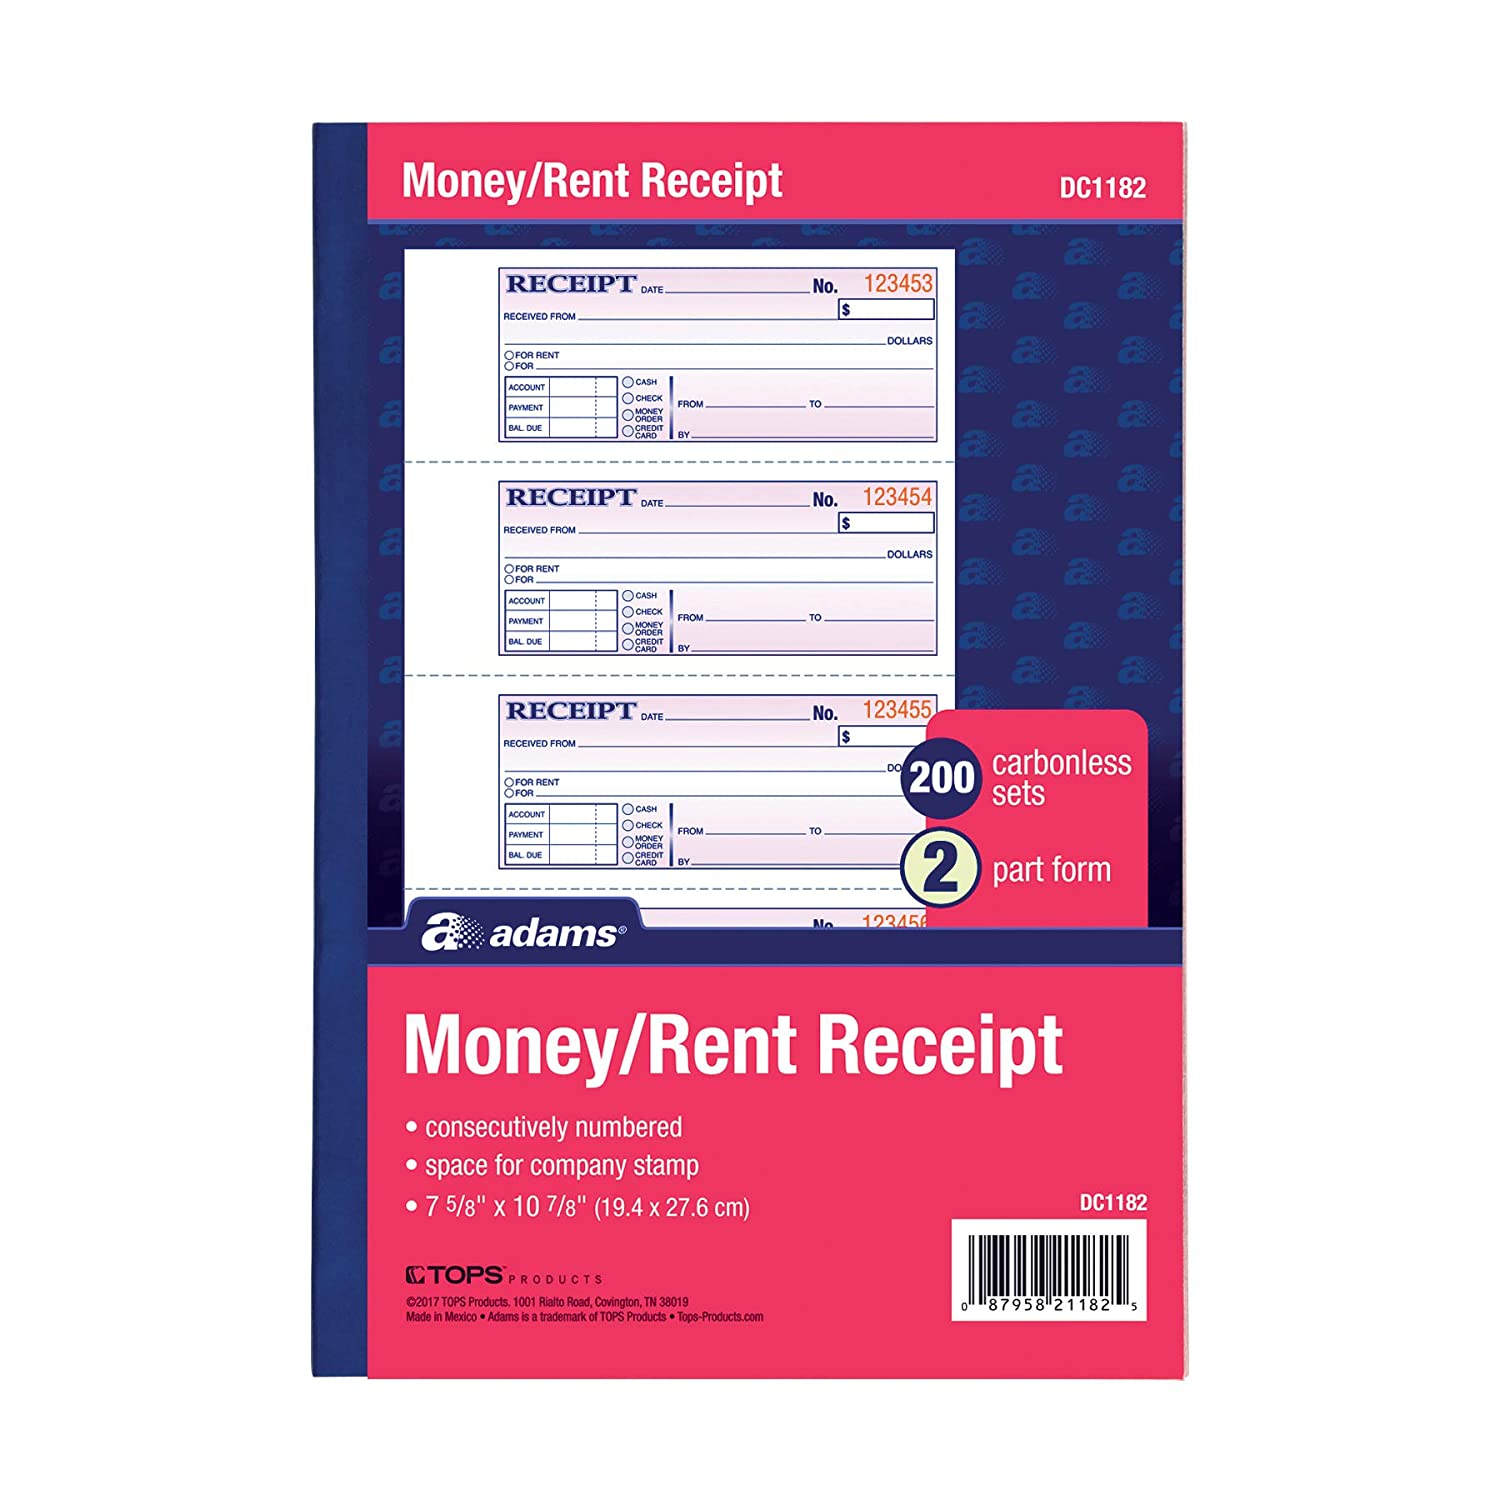 Adams Money and Rent Receipt, 7.63 x 11 Inches, 2-Parts, Carbonless, 4 per Page, 200 Sets, White and Canary, (DC1182) TOPS Business Forms Inc.